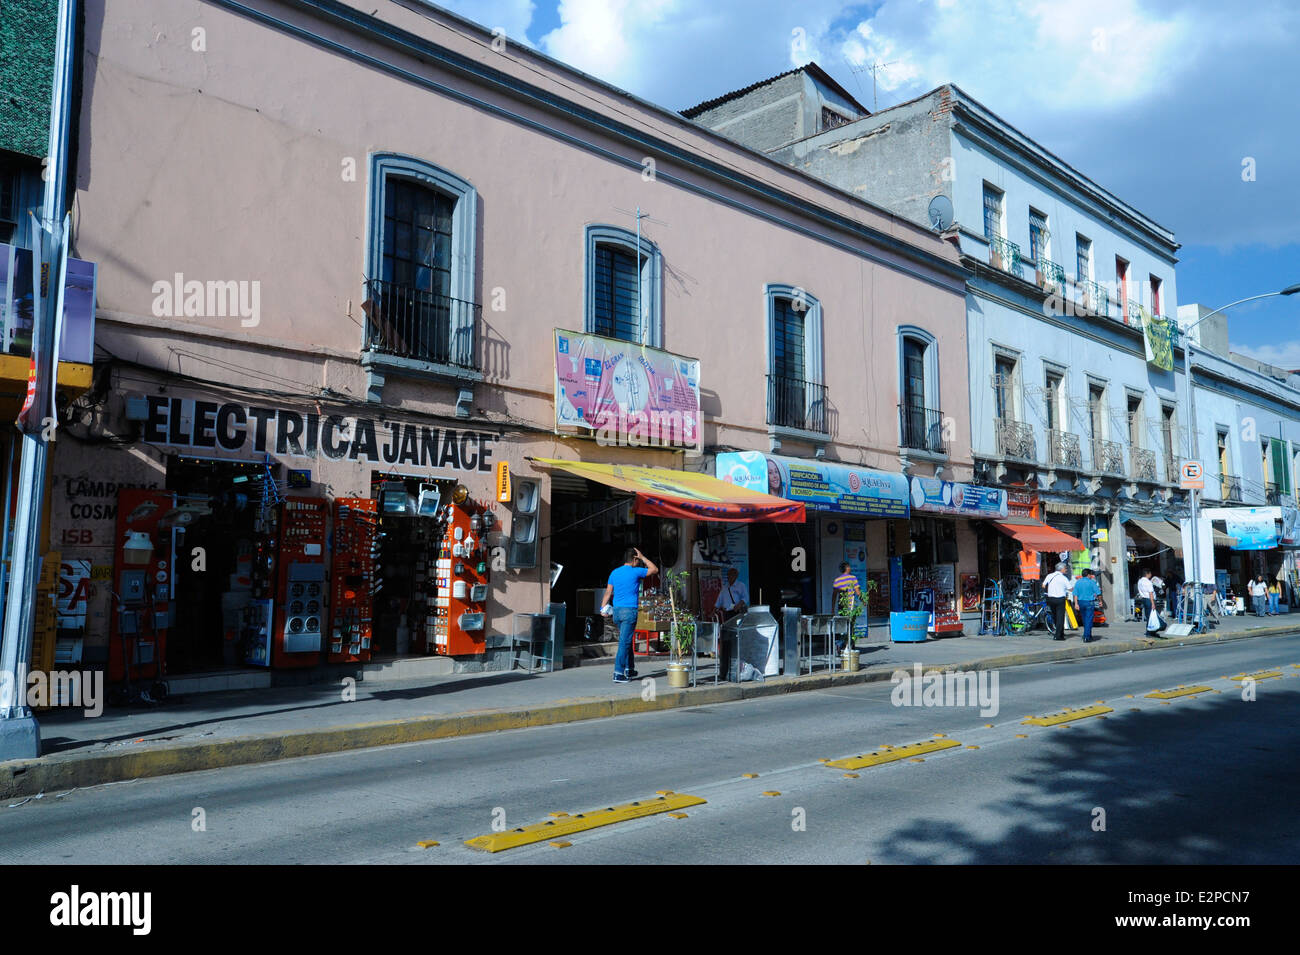 Businesses on Ayuntamiento Street in Mexico City, Mexico - Stock Image